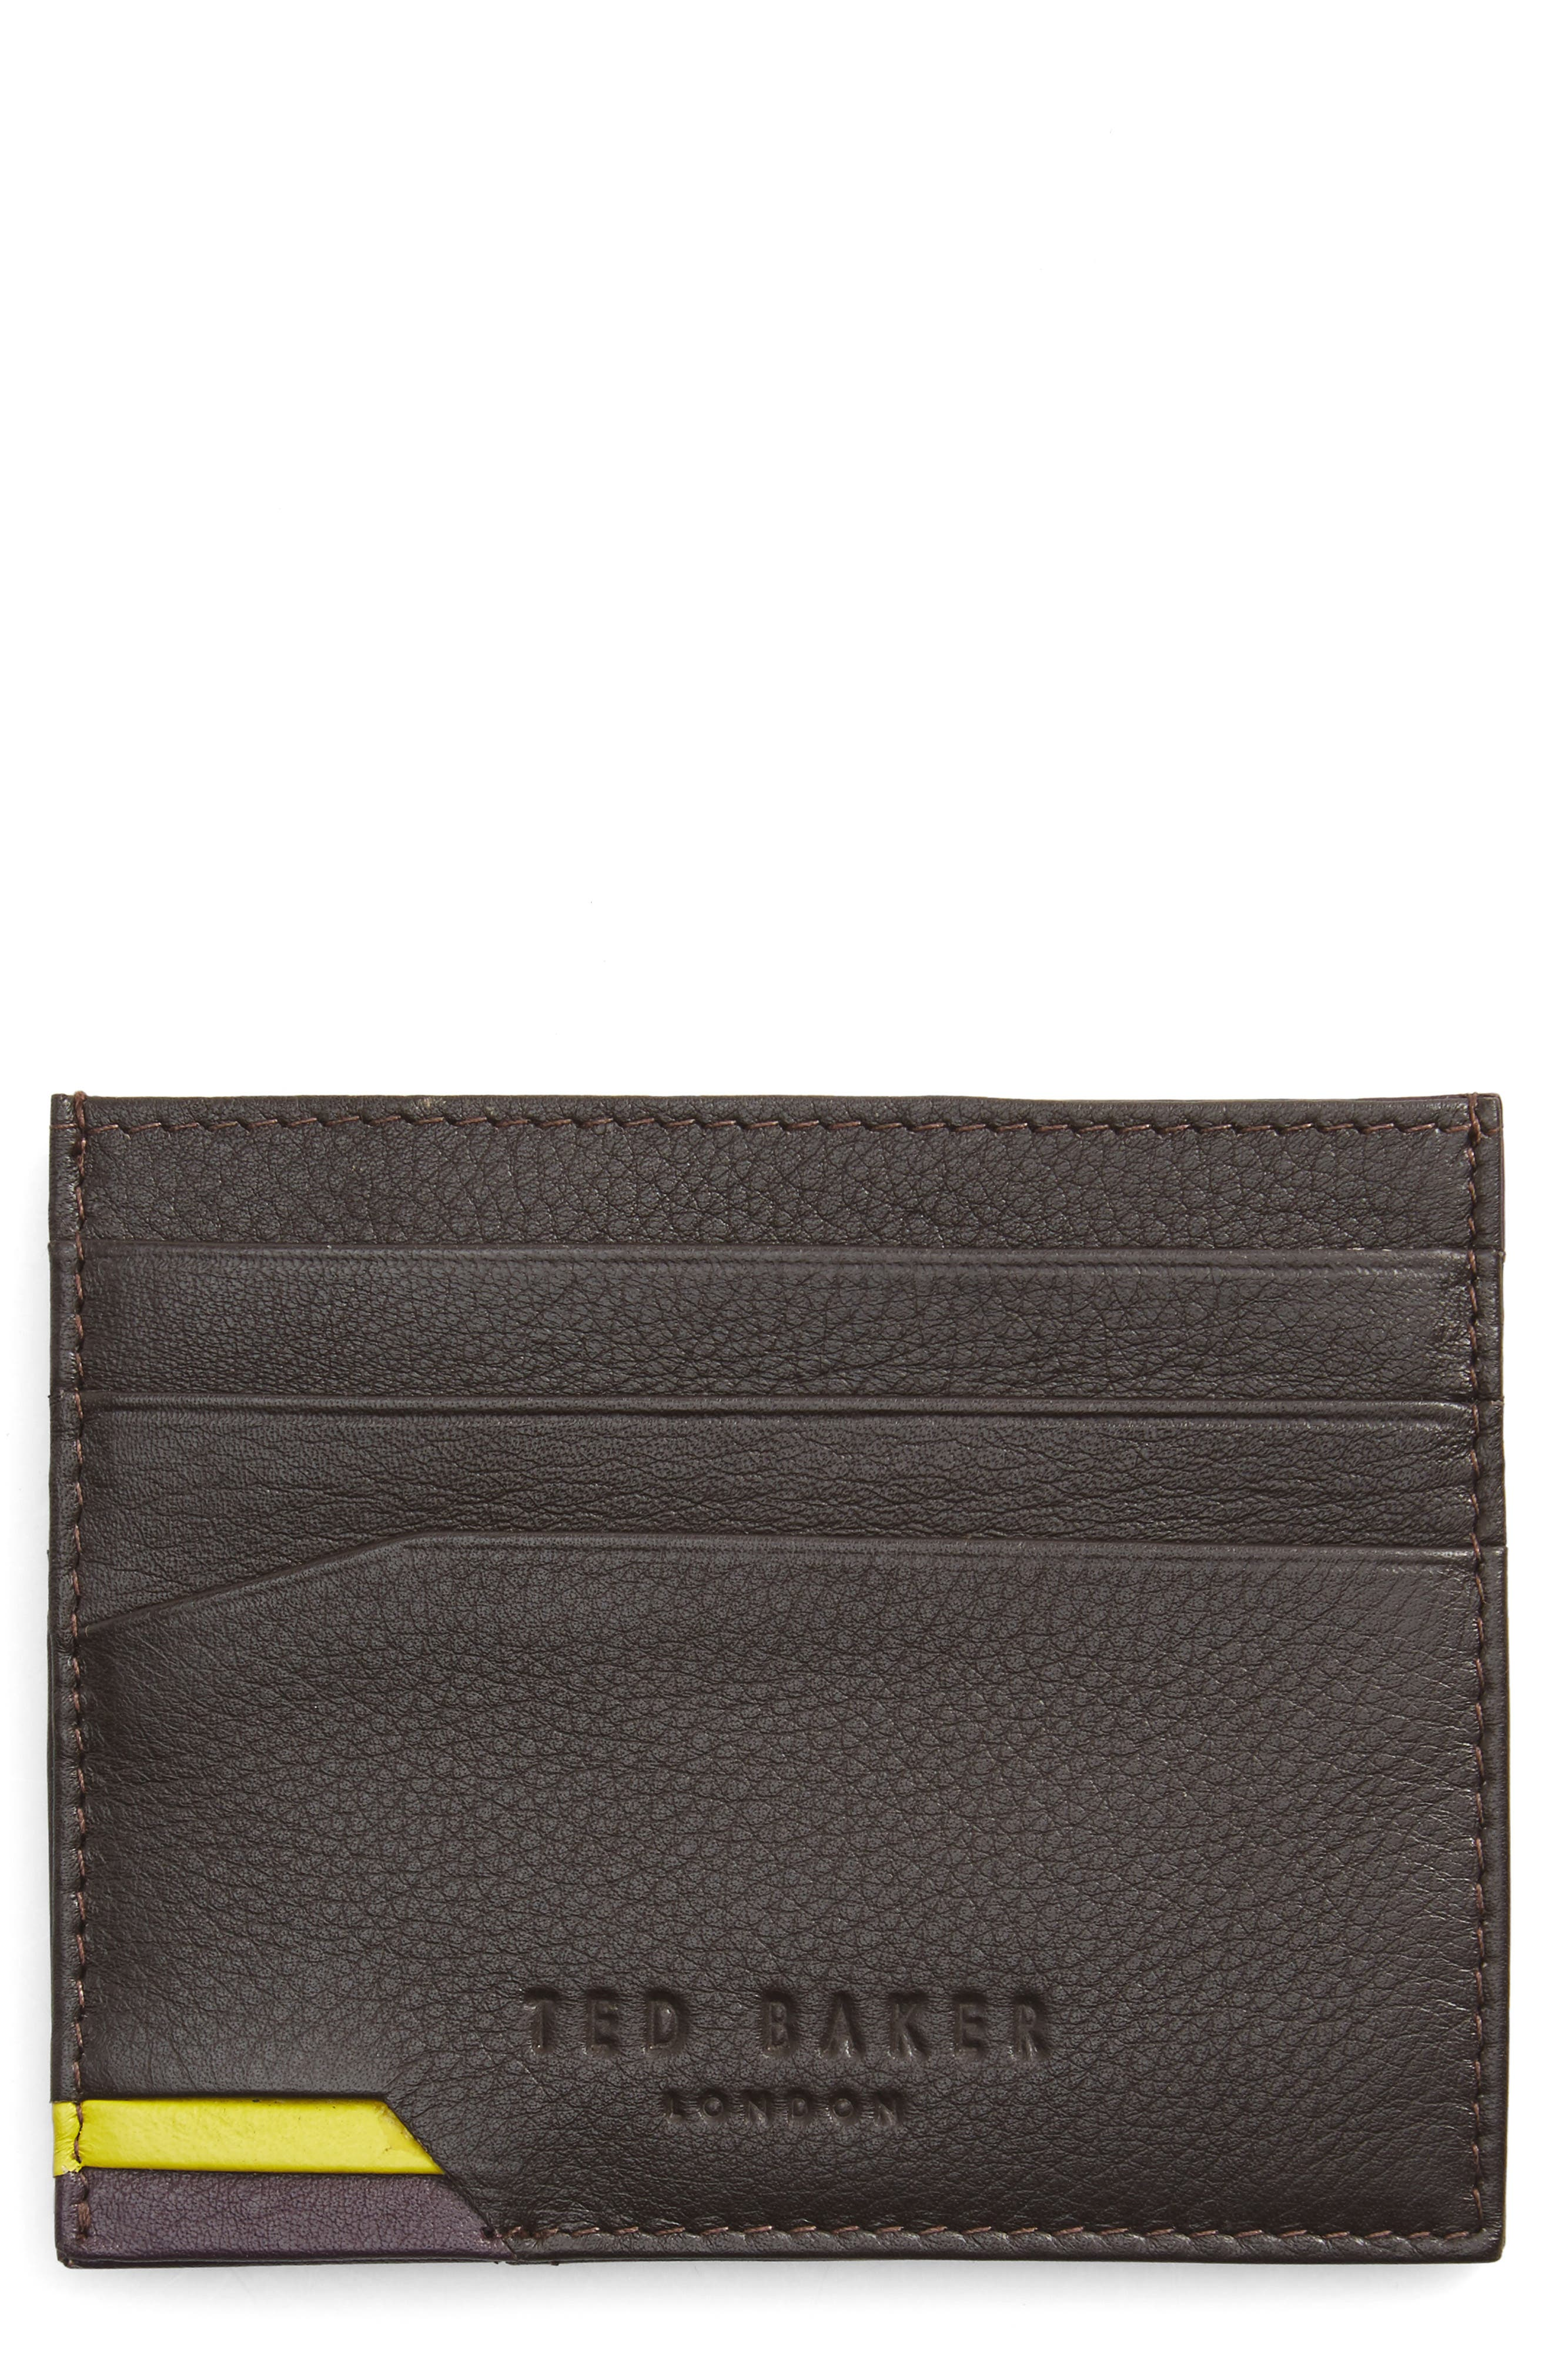 TED BAKER LONDON Corcard Card Case